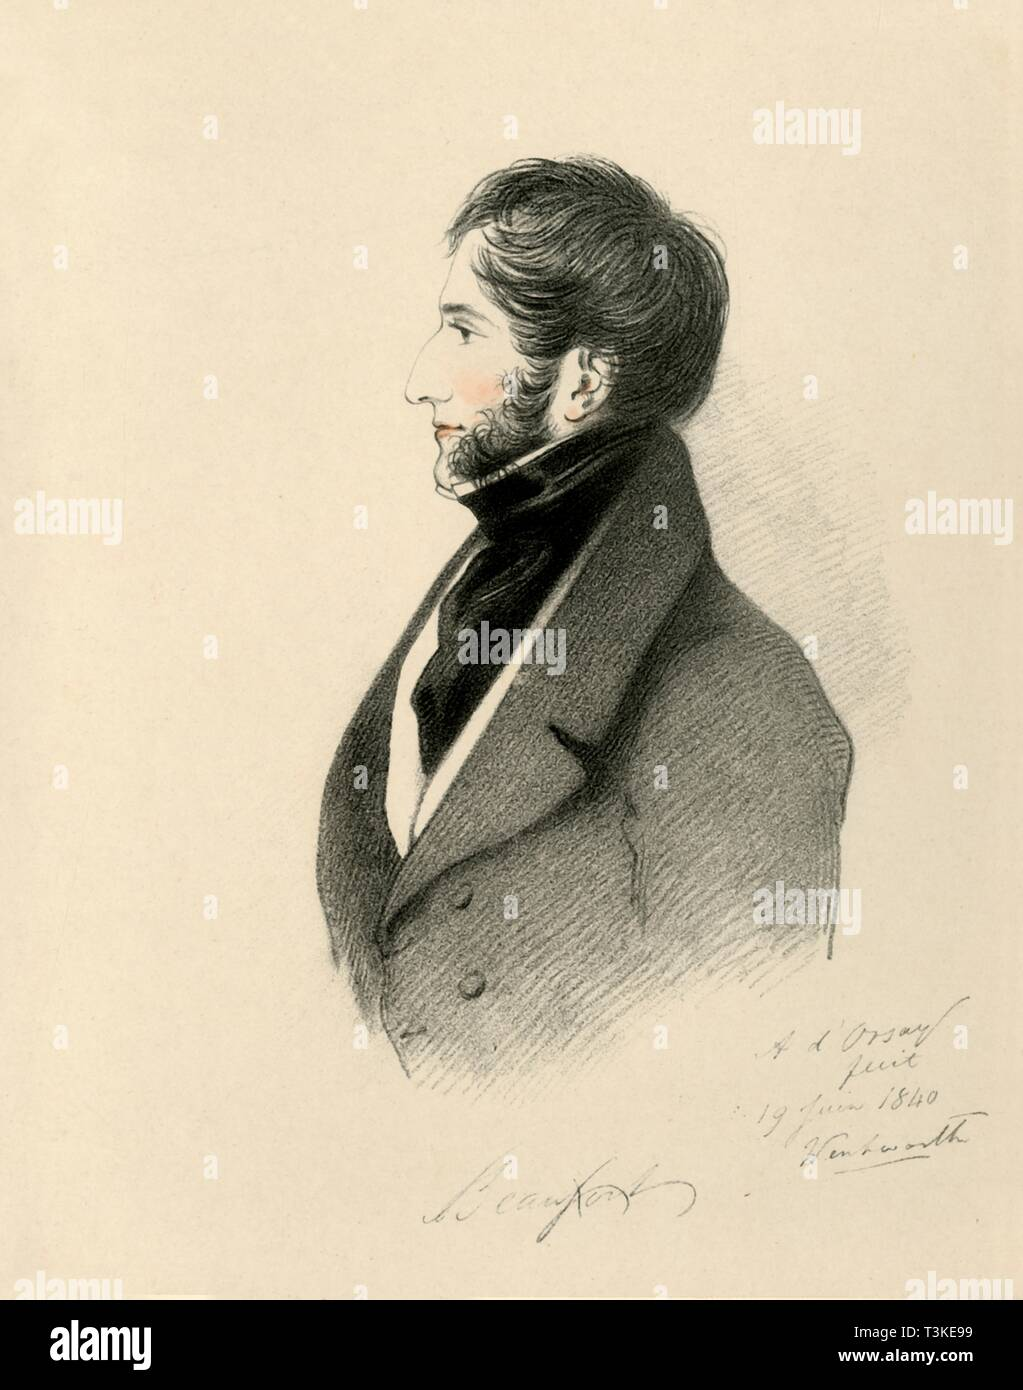 """'The Duke of Beaufort', 1840. Portrait of Henry Somerset, 7th Duke of Beaufort (1792-1853), British politician and soldier. From """"Portraits by Count D'Orsay"""", an album assembled by Lady Georgiana Codrington. [1850s] - Stock Image"""